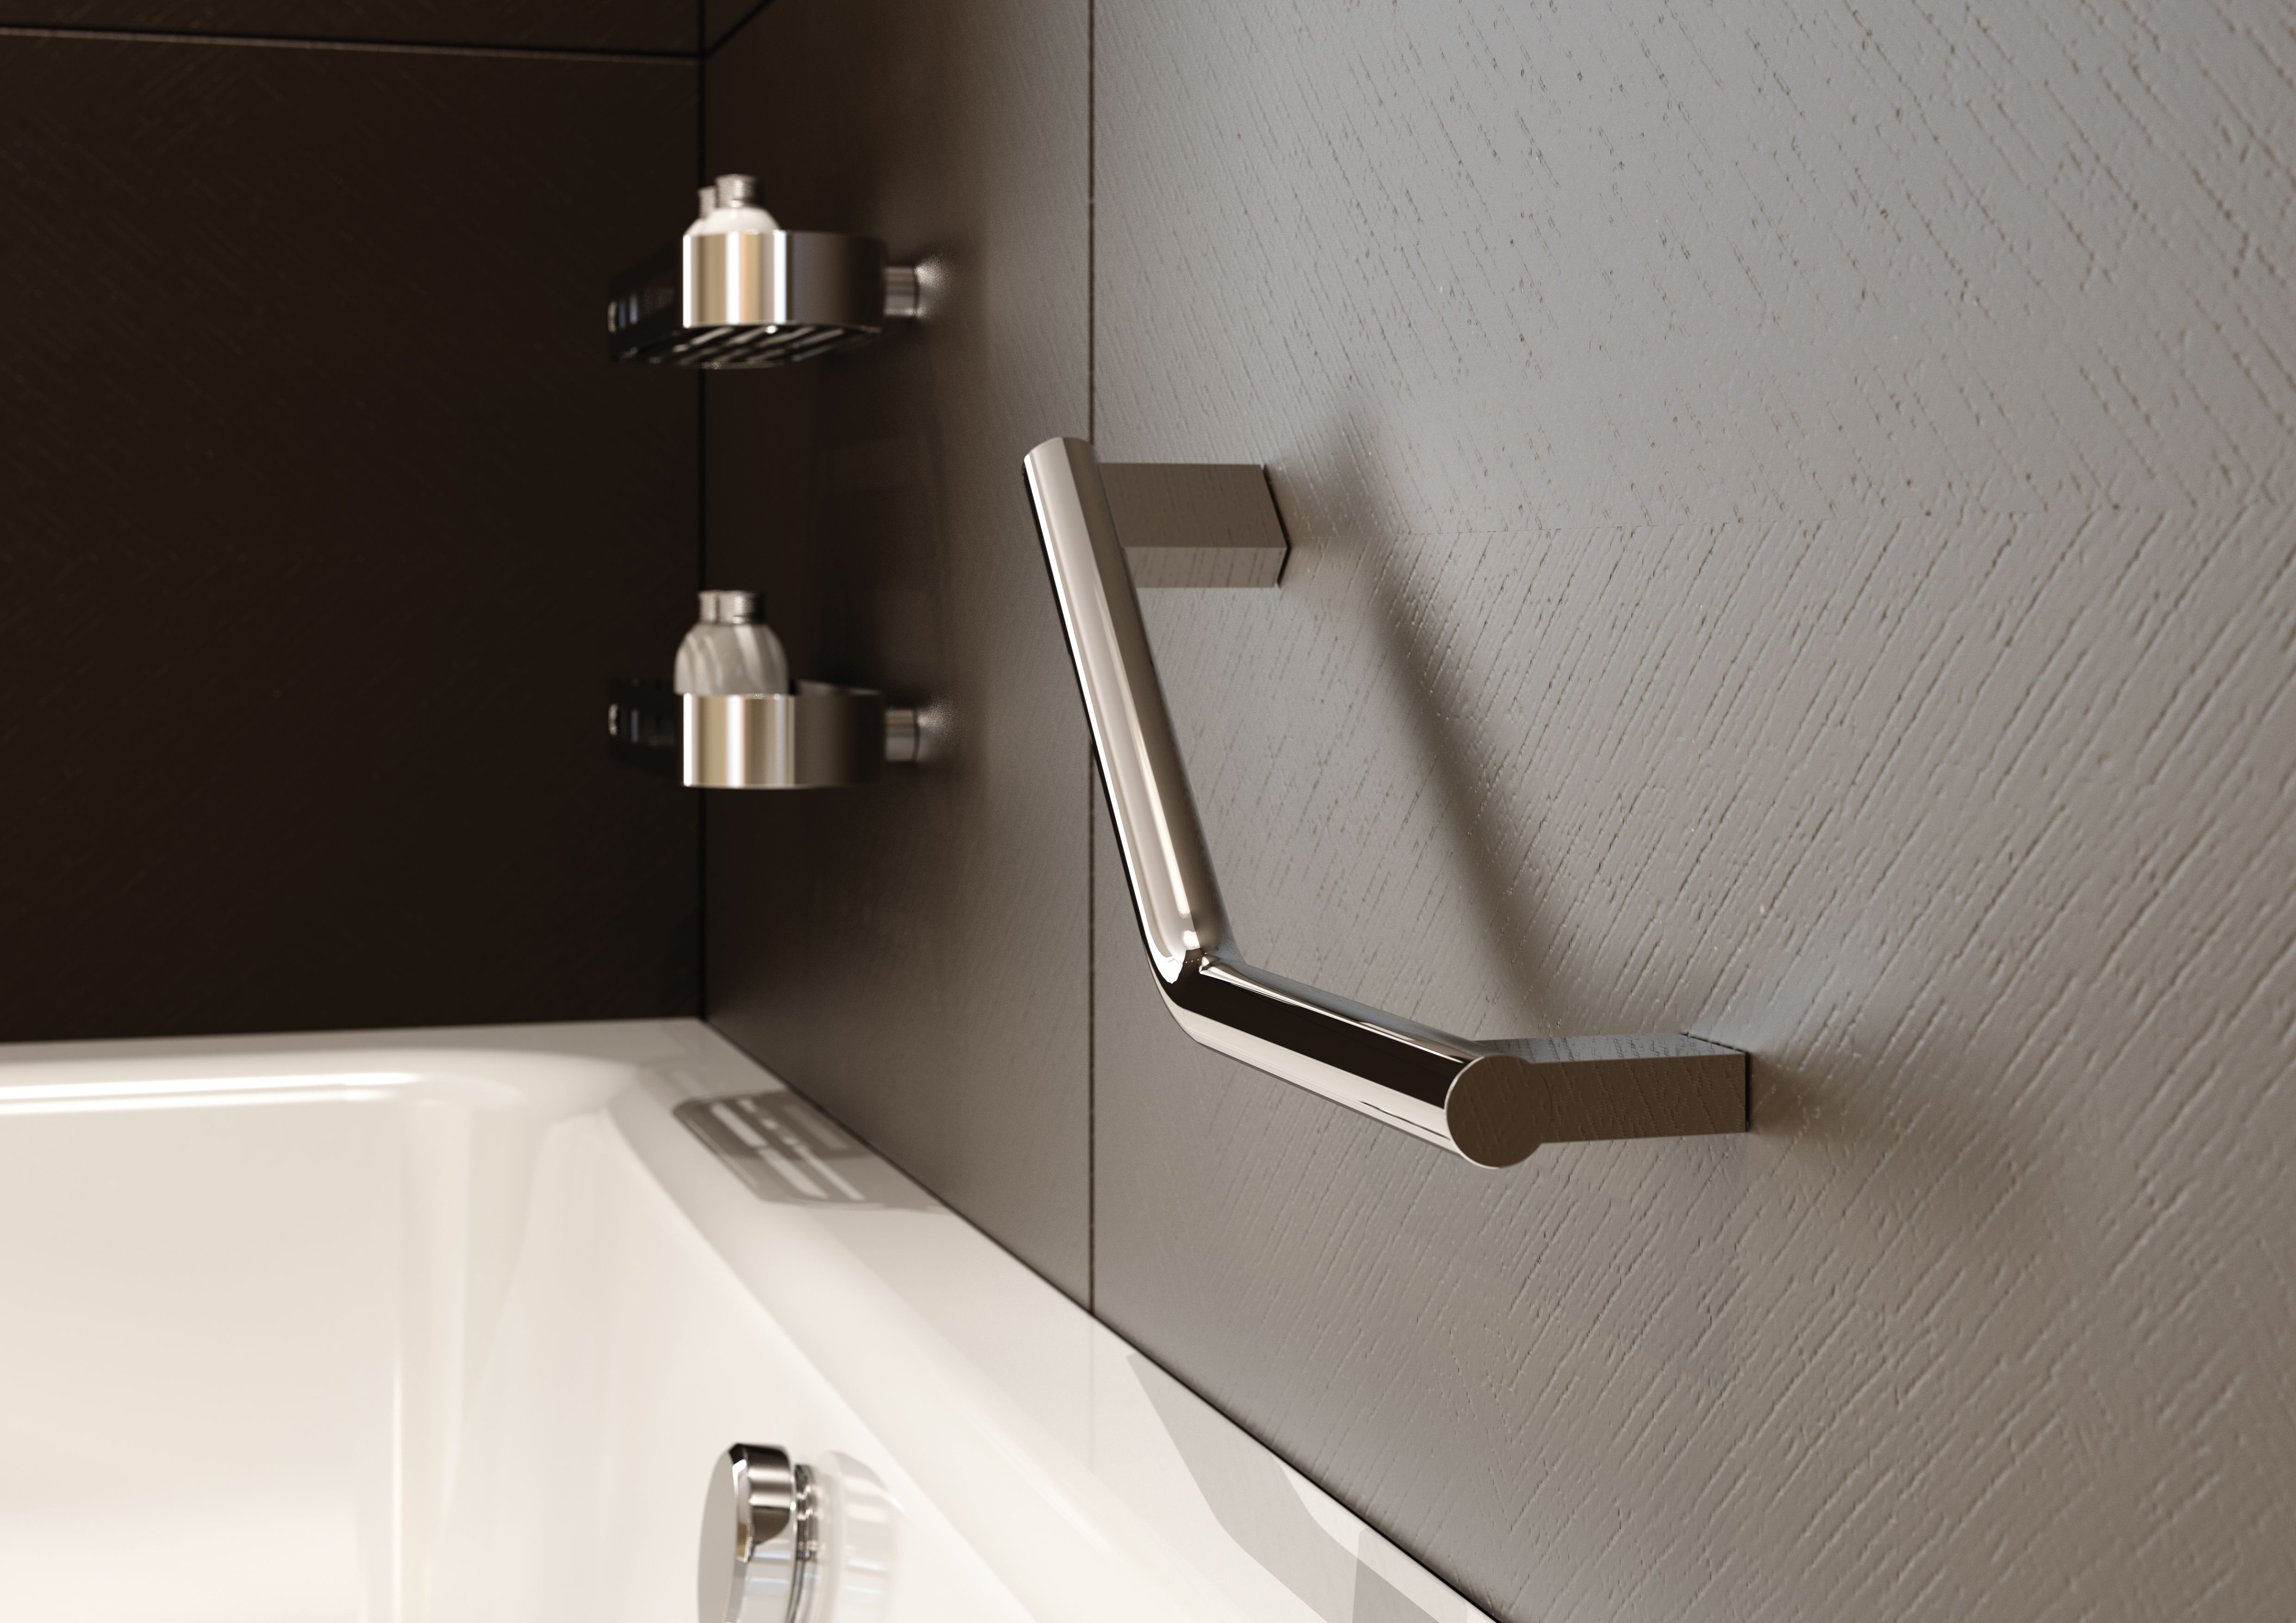 Sonia Lux Modern Bathroom Shower Angled Grab Bar Chrome 153244 Dimensions: W304 H25 D75mm Material: chrome plated on brass